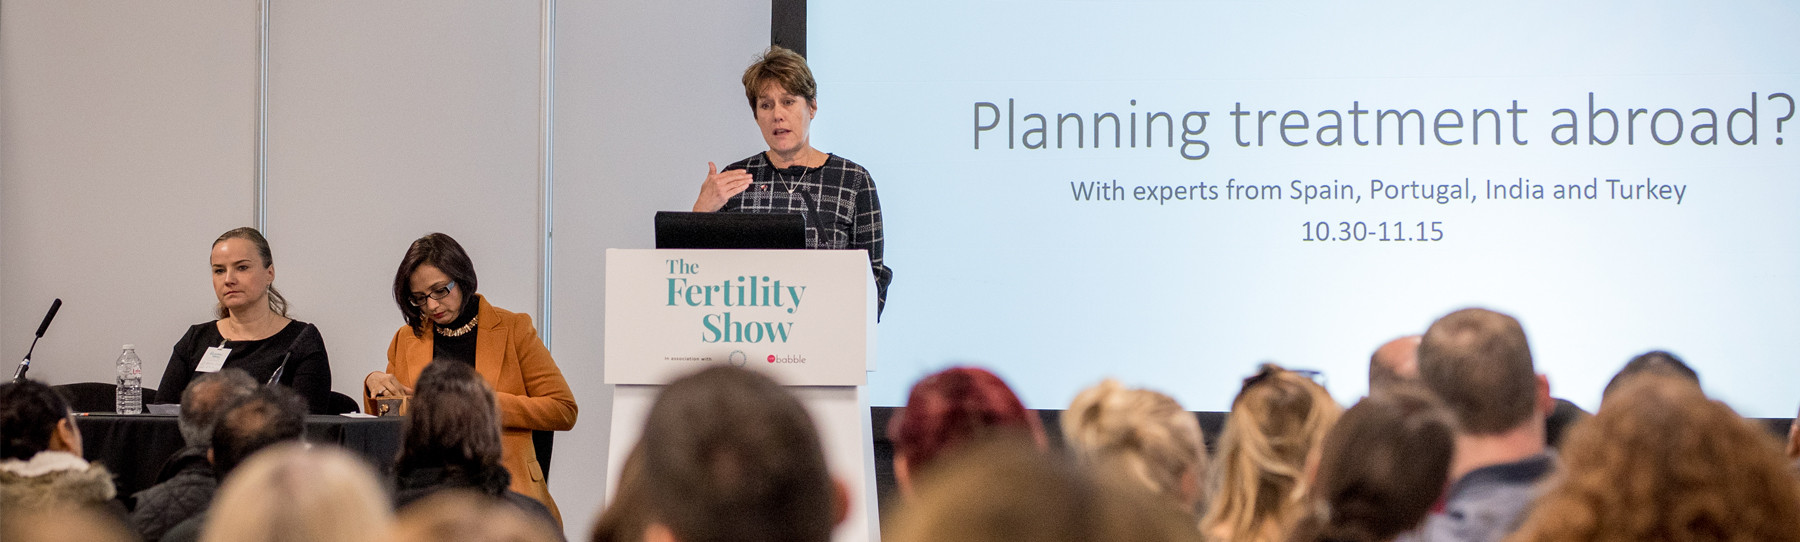 The Fertility Show Seminar Programme 2019